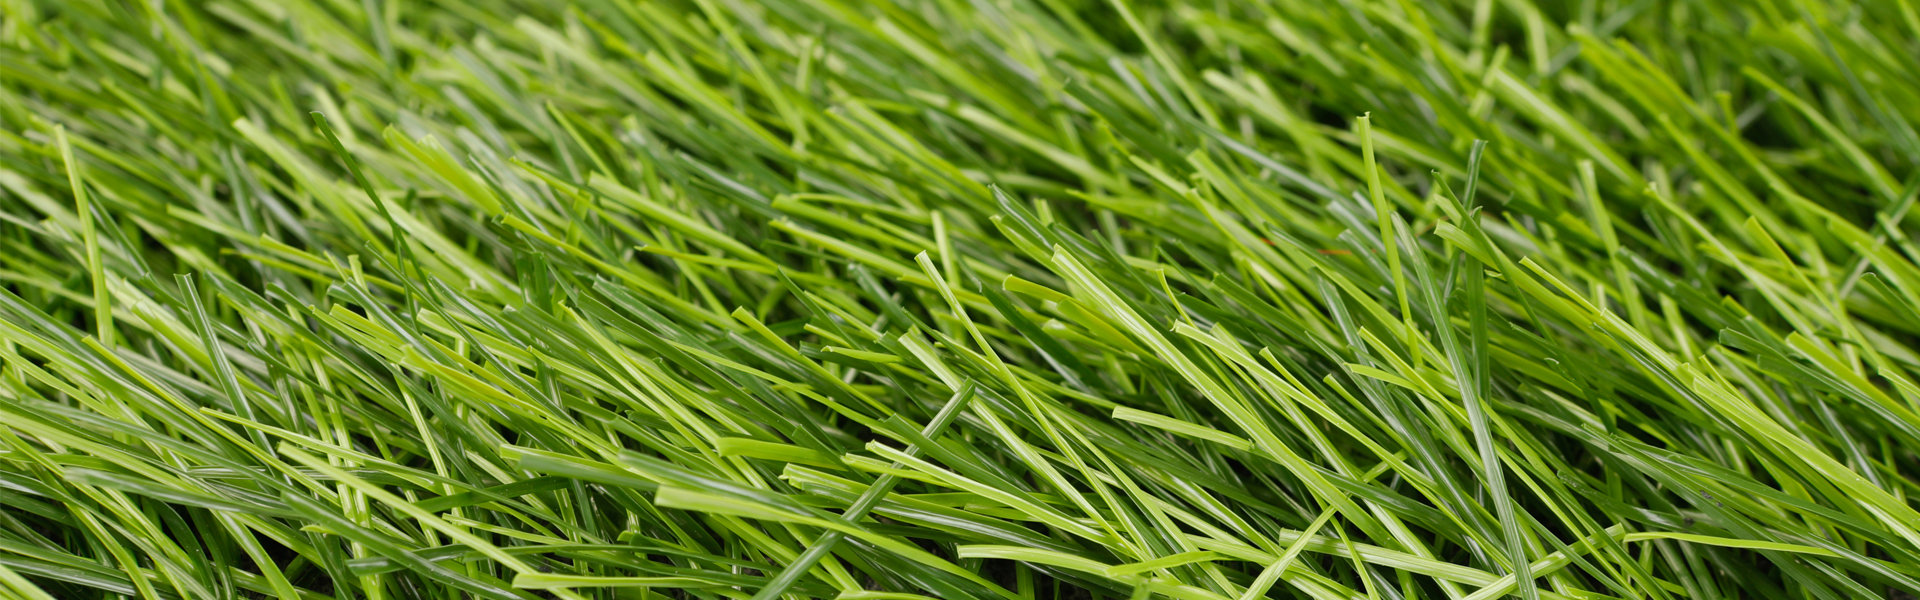 For Cost of PowerGrass Artificial Grass Production